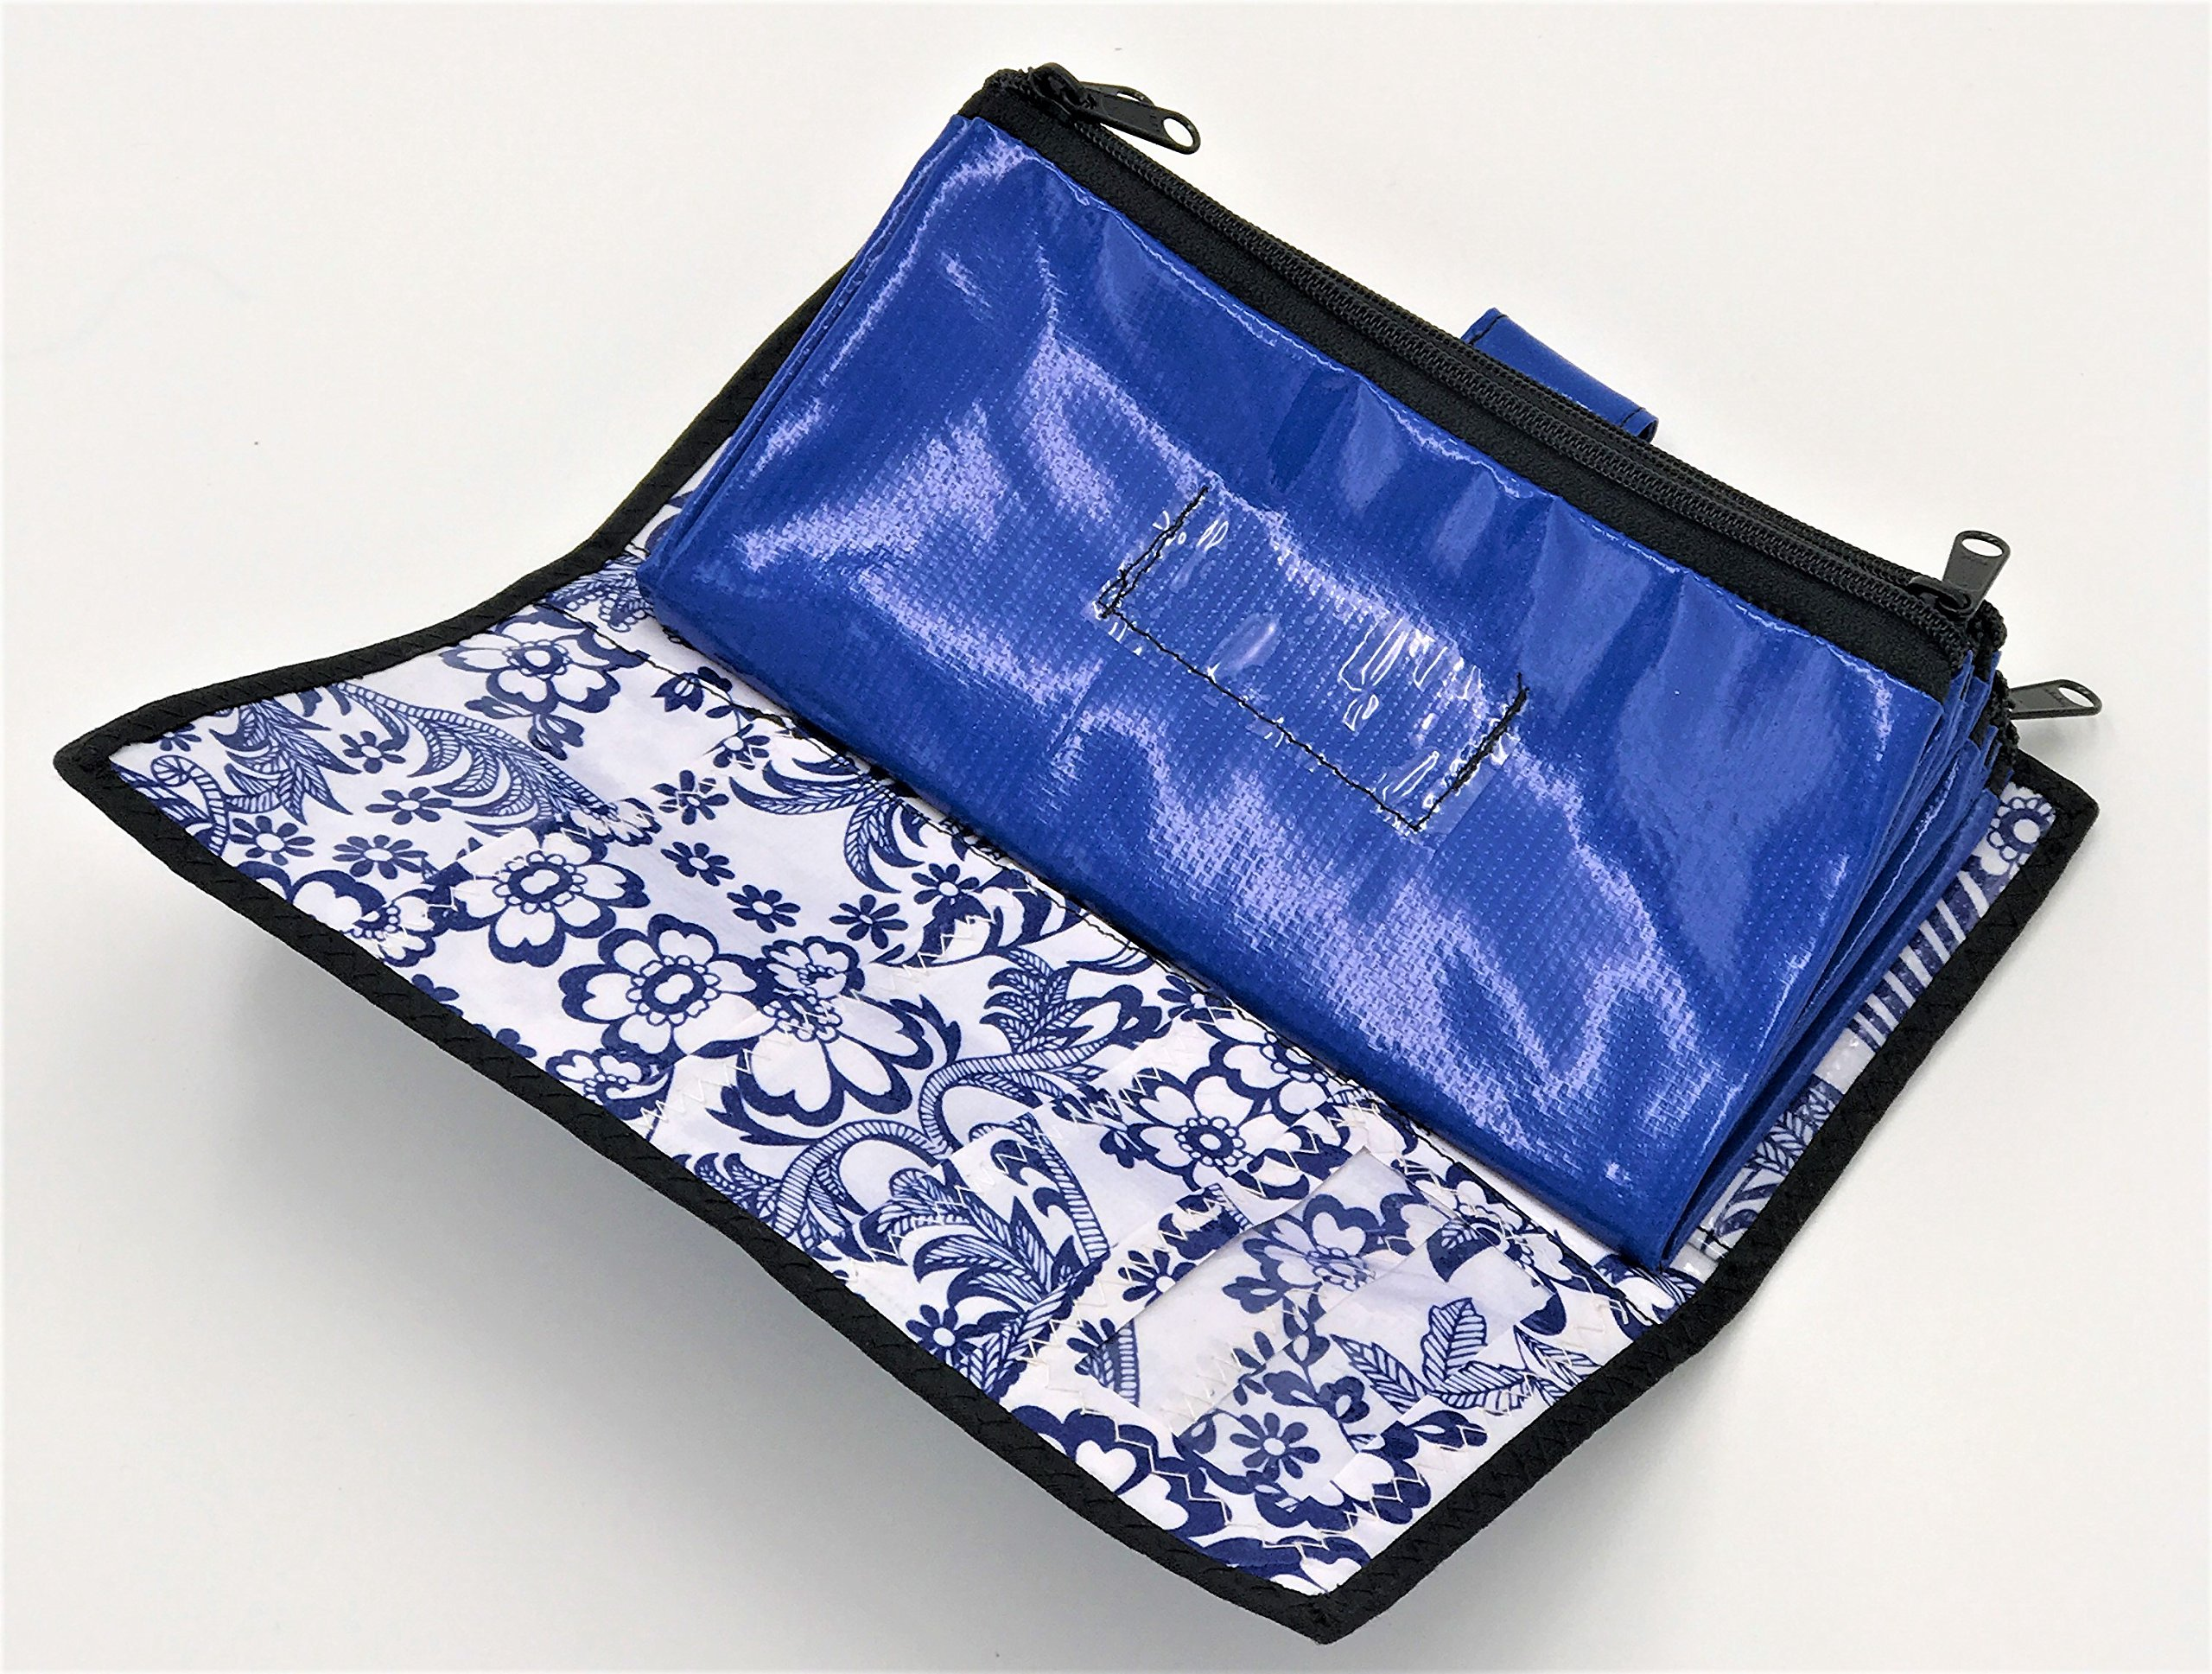 Cute Blue and White Oilcloth Envelope System Wallet for Cash Budgeting and Extreme Couponing